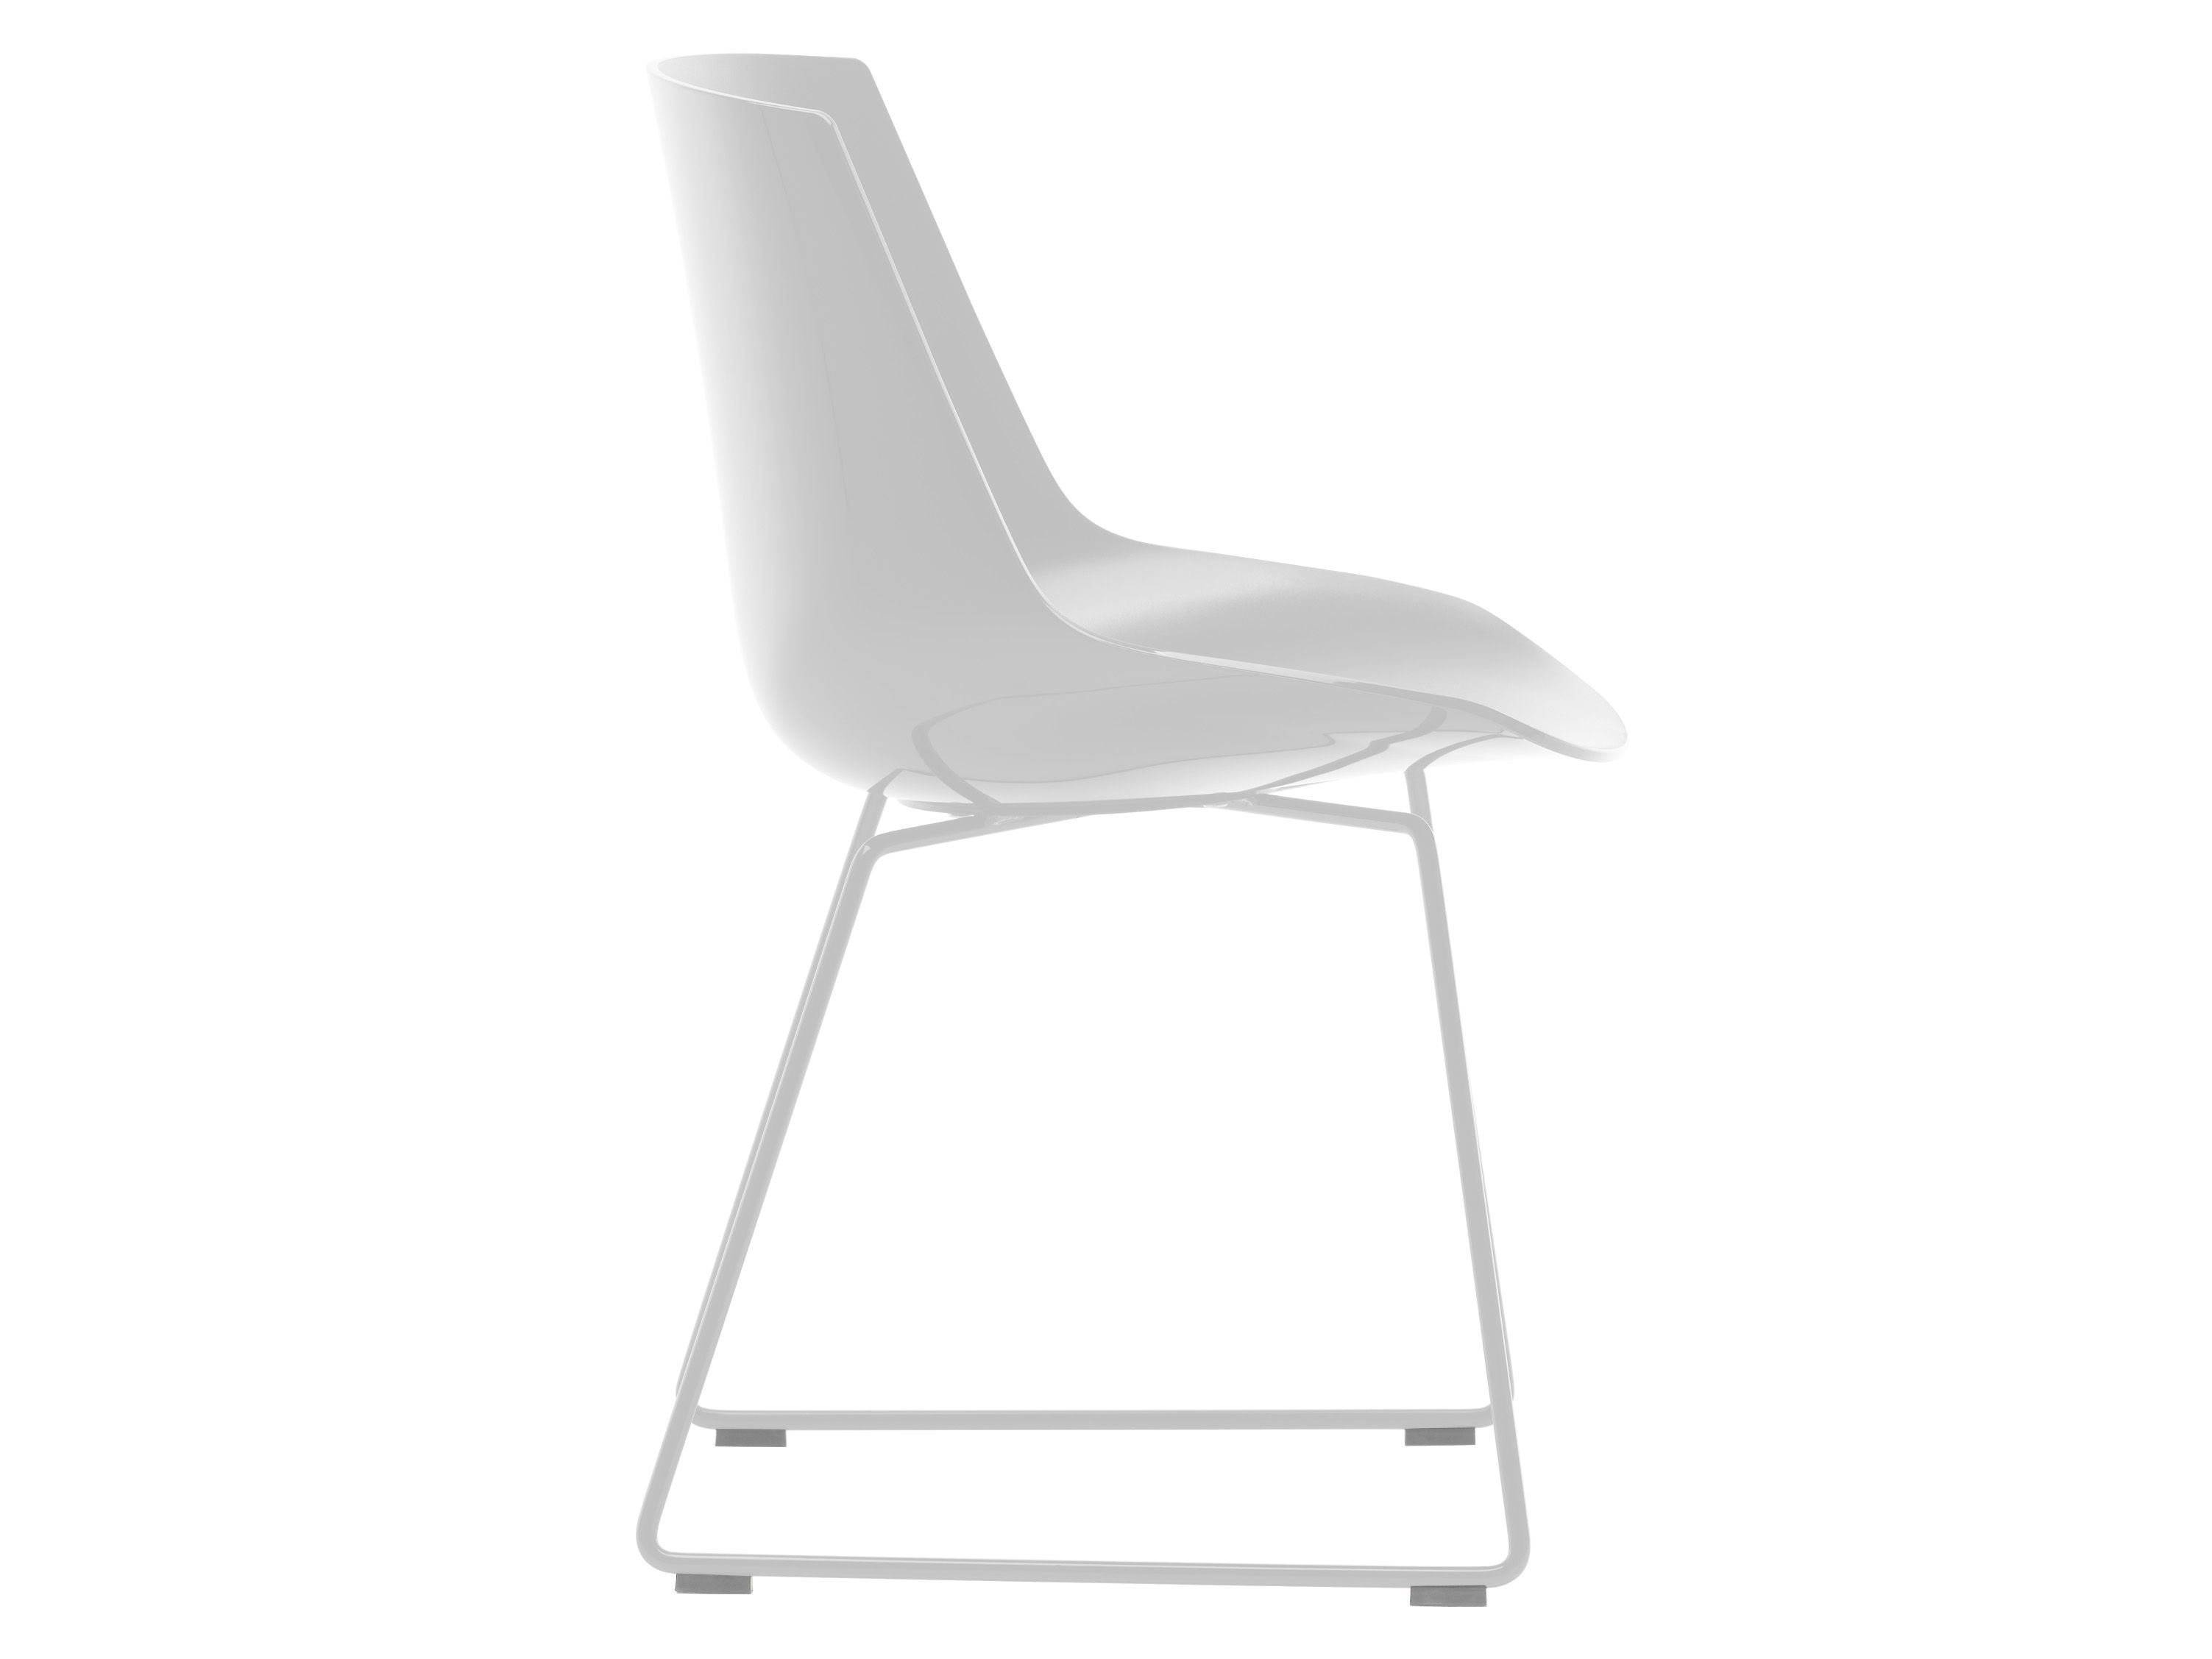 Furniture - Chairs - Flow Chair - Sled base by MDF Italia - White shell / White frame - Lacquered steel, Polycarbonate